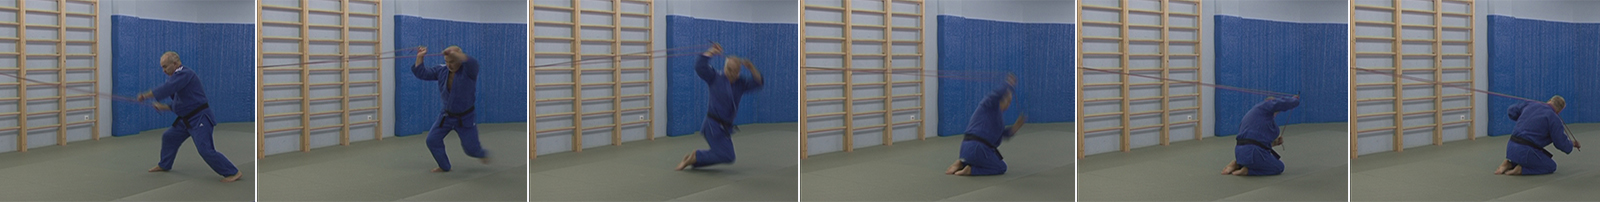 Exercises with a rubber expander. Throw through a back from the knees - Seoi-otoshi.